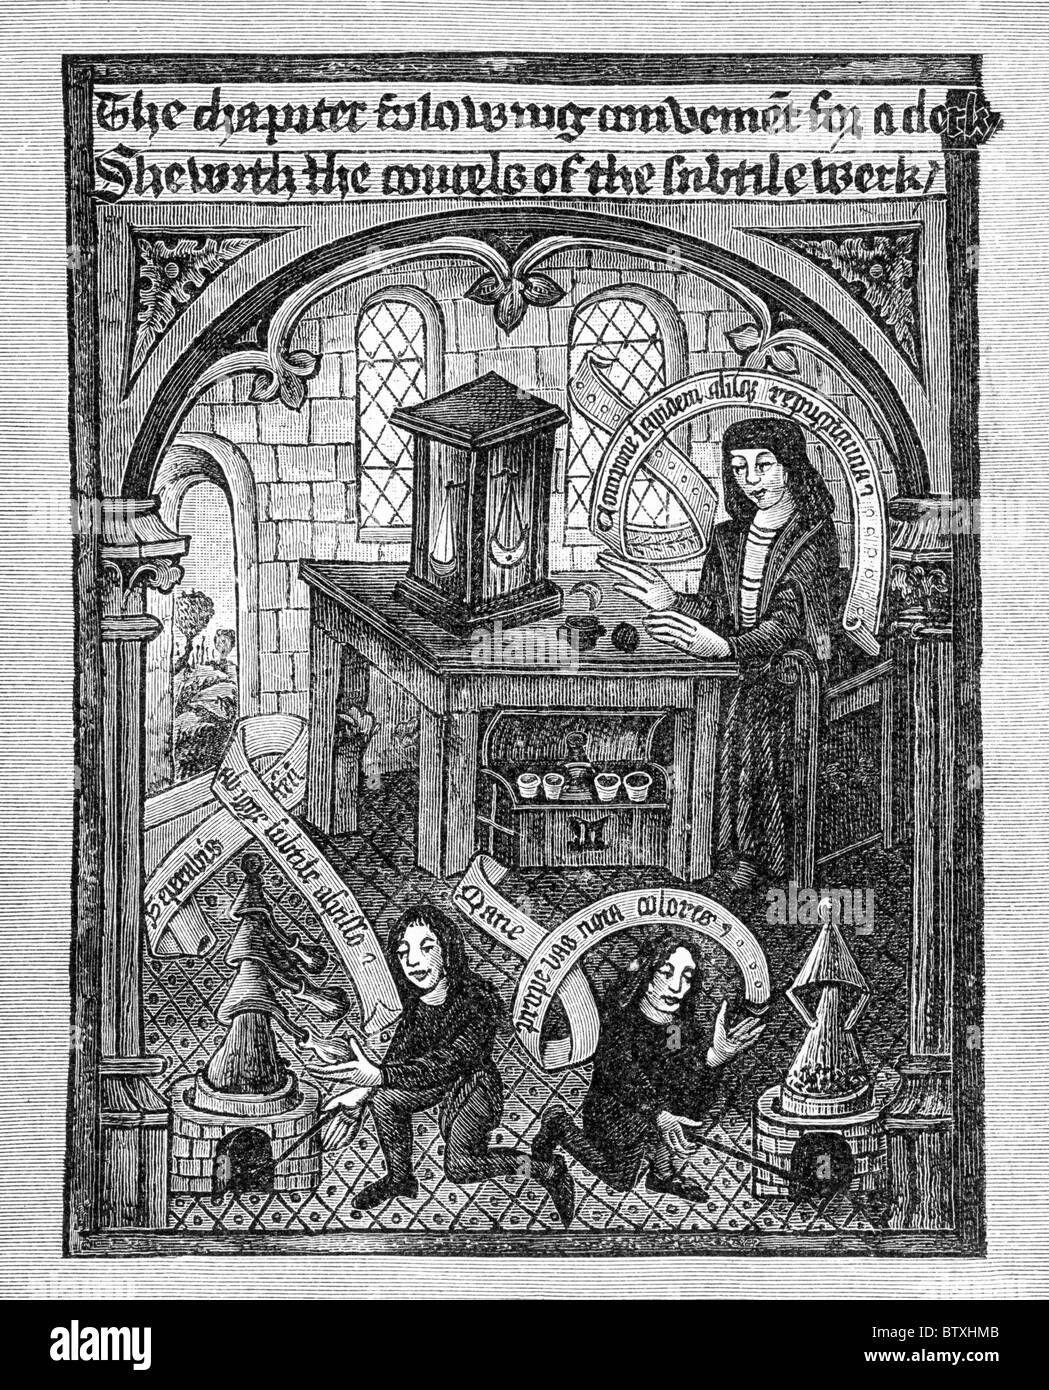 Alchemists at work; From The Ordinall of Alchymy, written, in verse, by Thomas Norton, of Bristol circa 1480 - 1490 - Stock Image